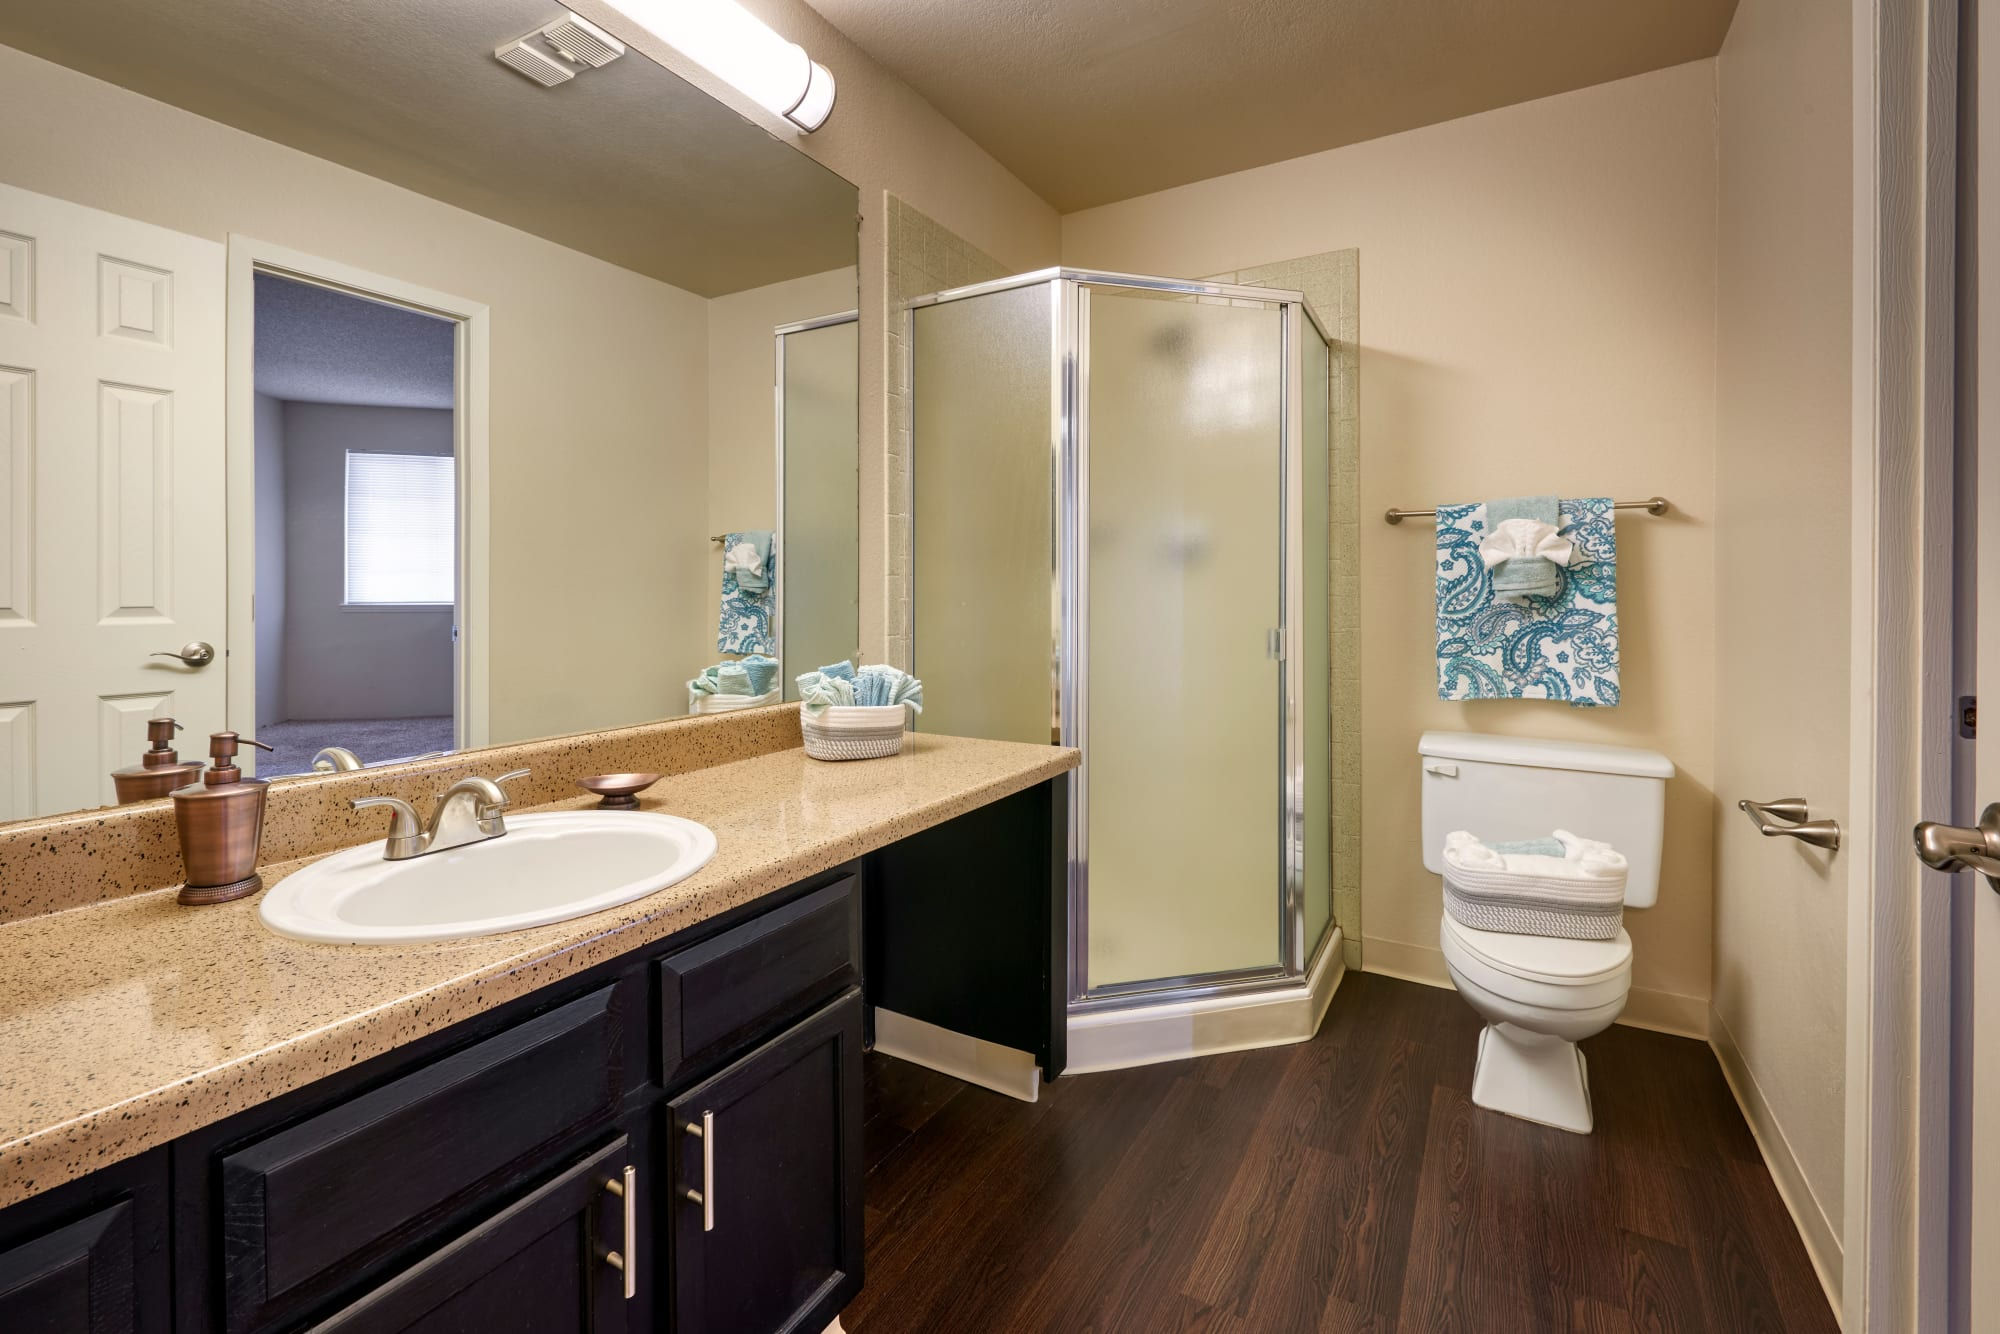 Recently renovated bathroom with brown cabinets at Bluesky Landing Apartments in Lakewood, Colorado